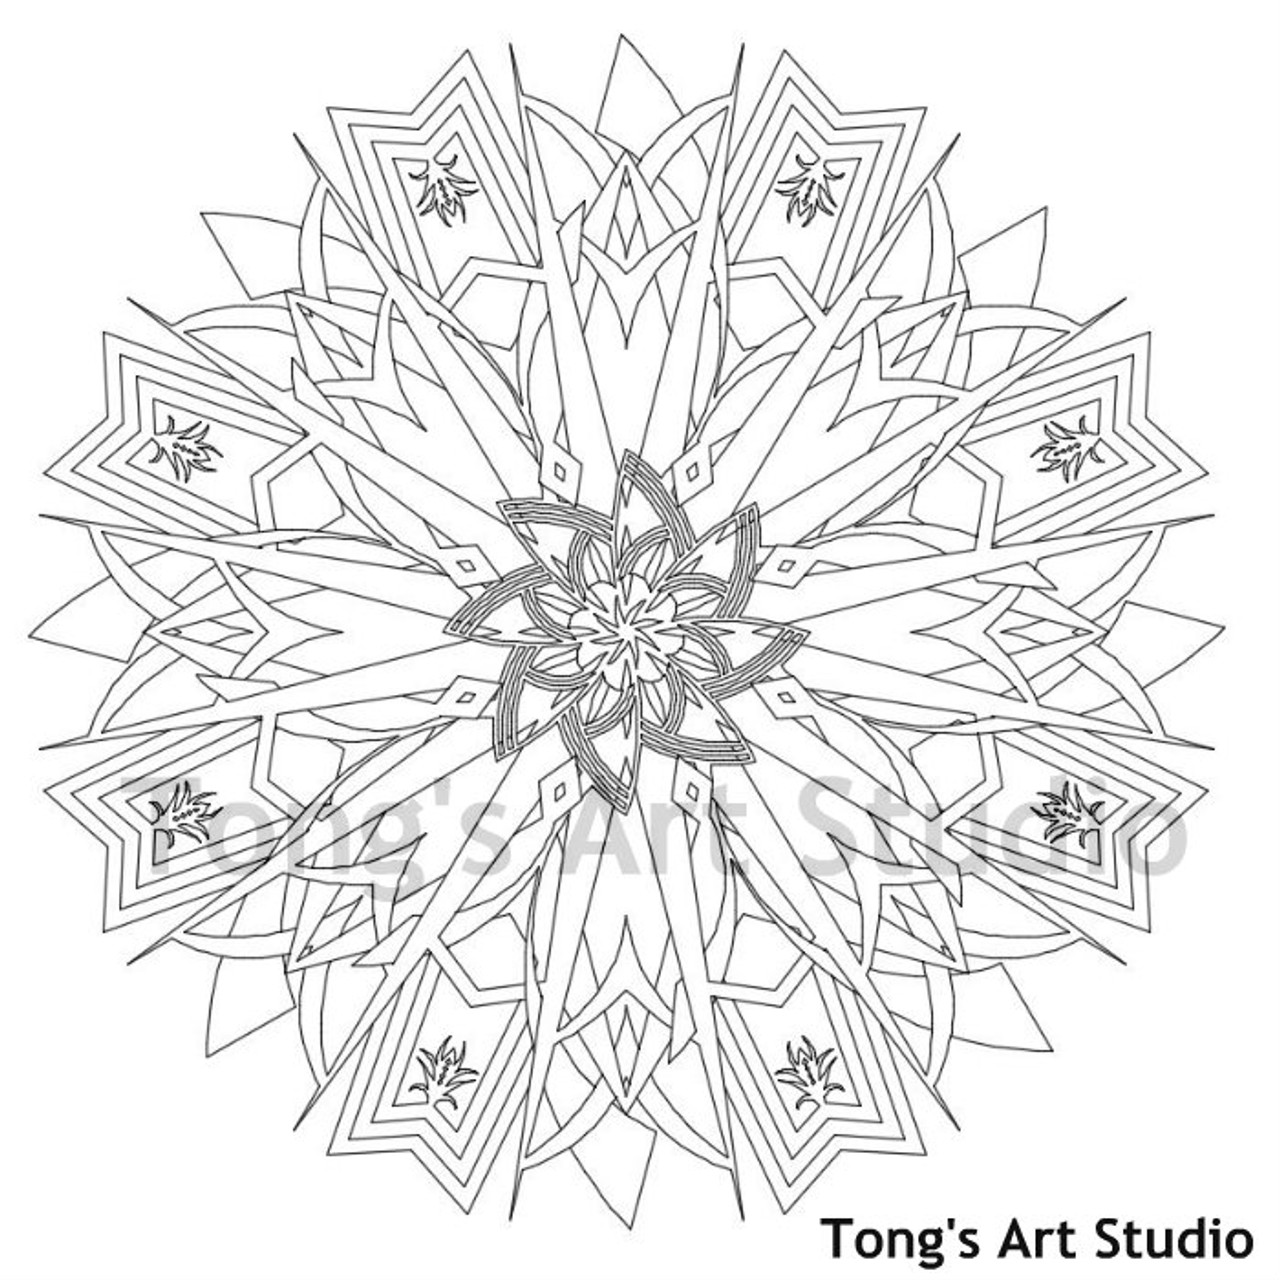 instant downloadcoloring pagemandala style005  tong's